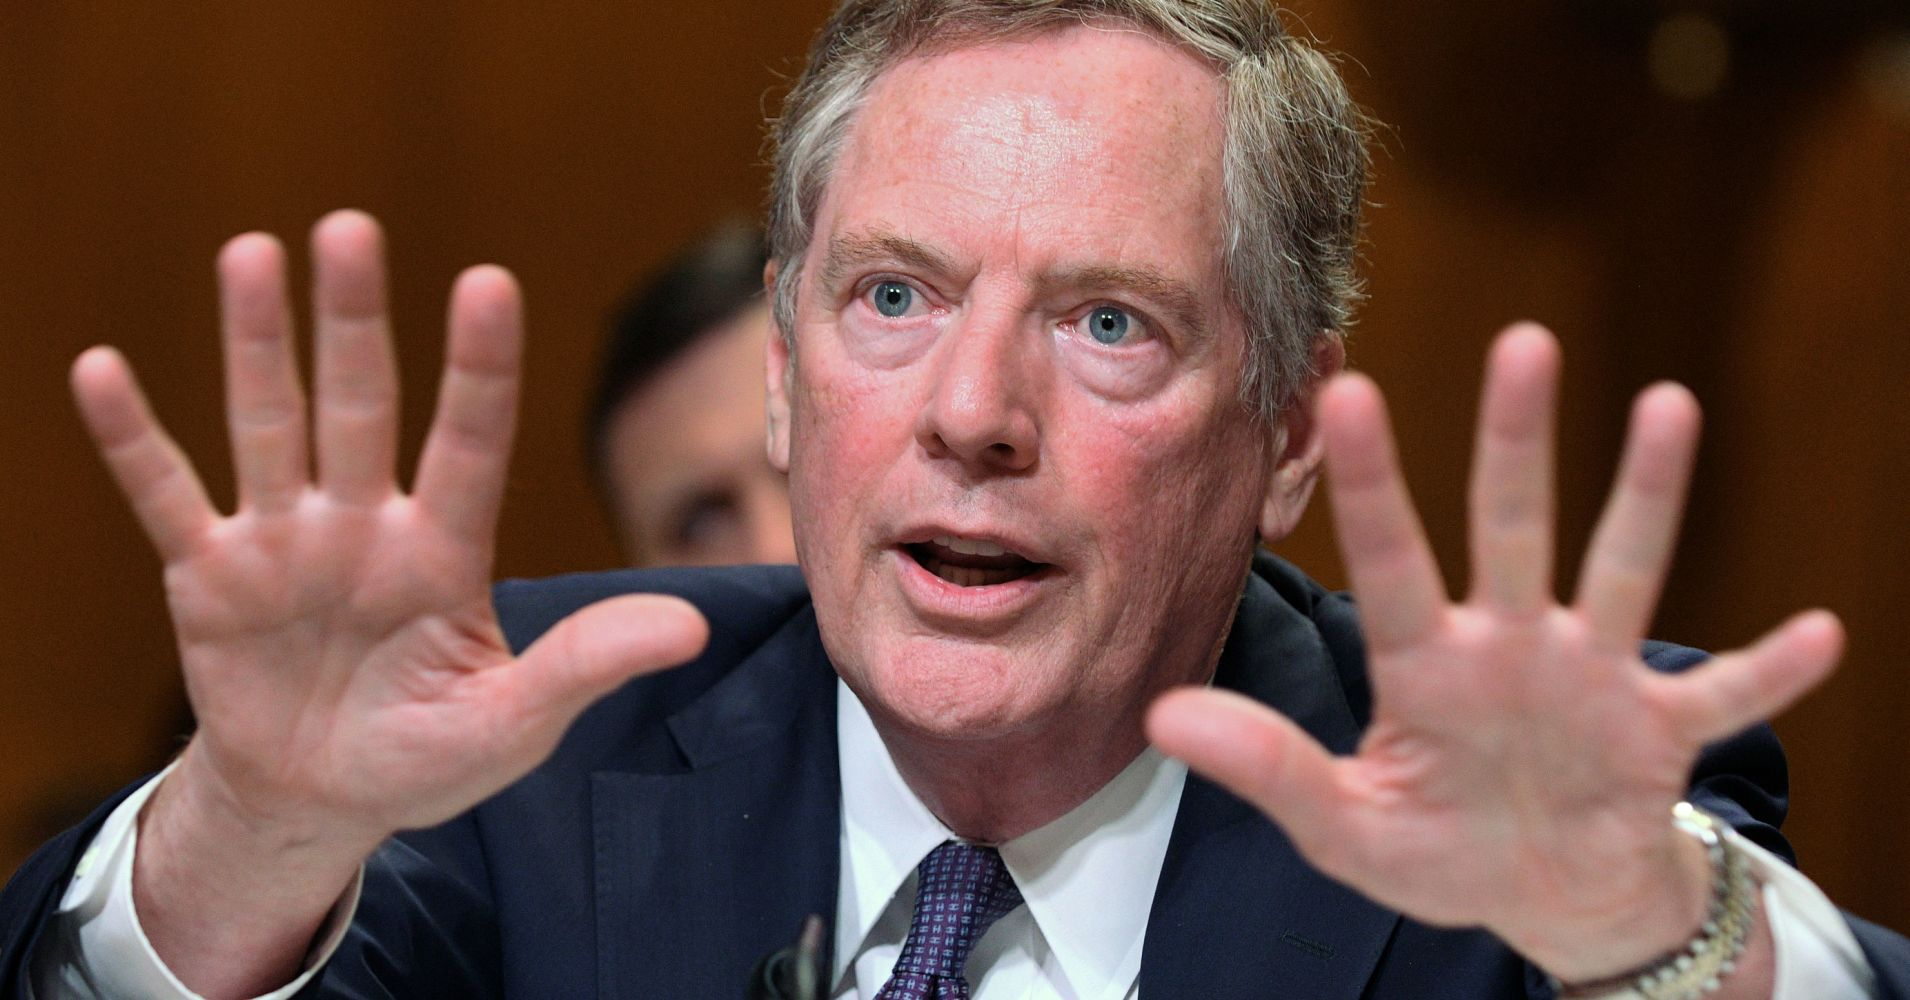 Trade Representative Lighthizer says deal must not be just China purchases, but include enforcement